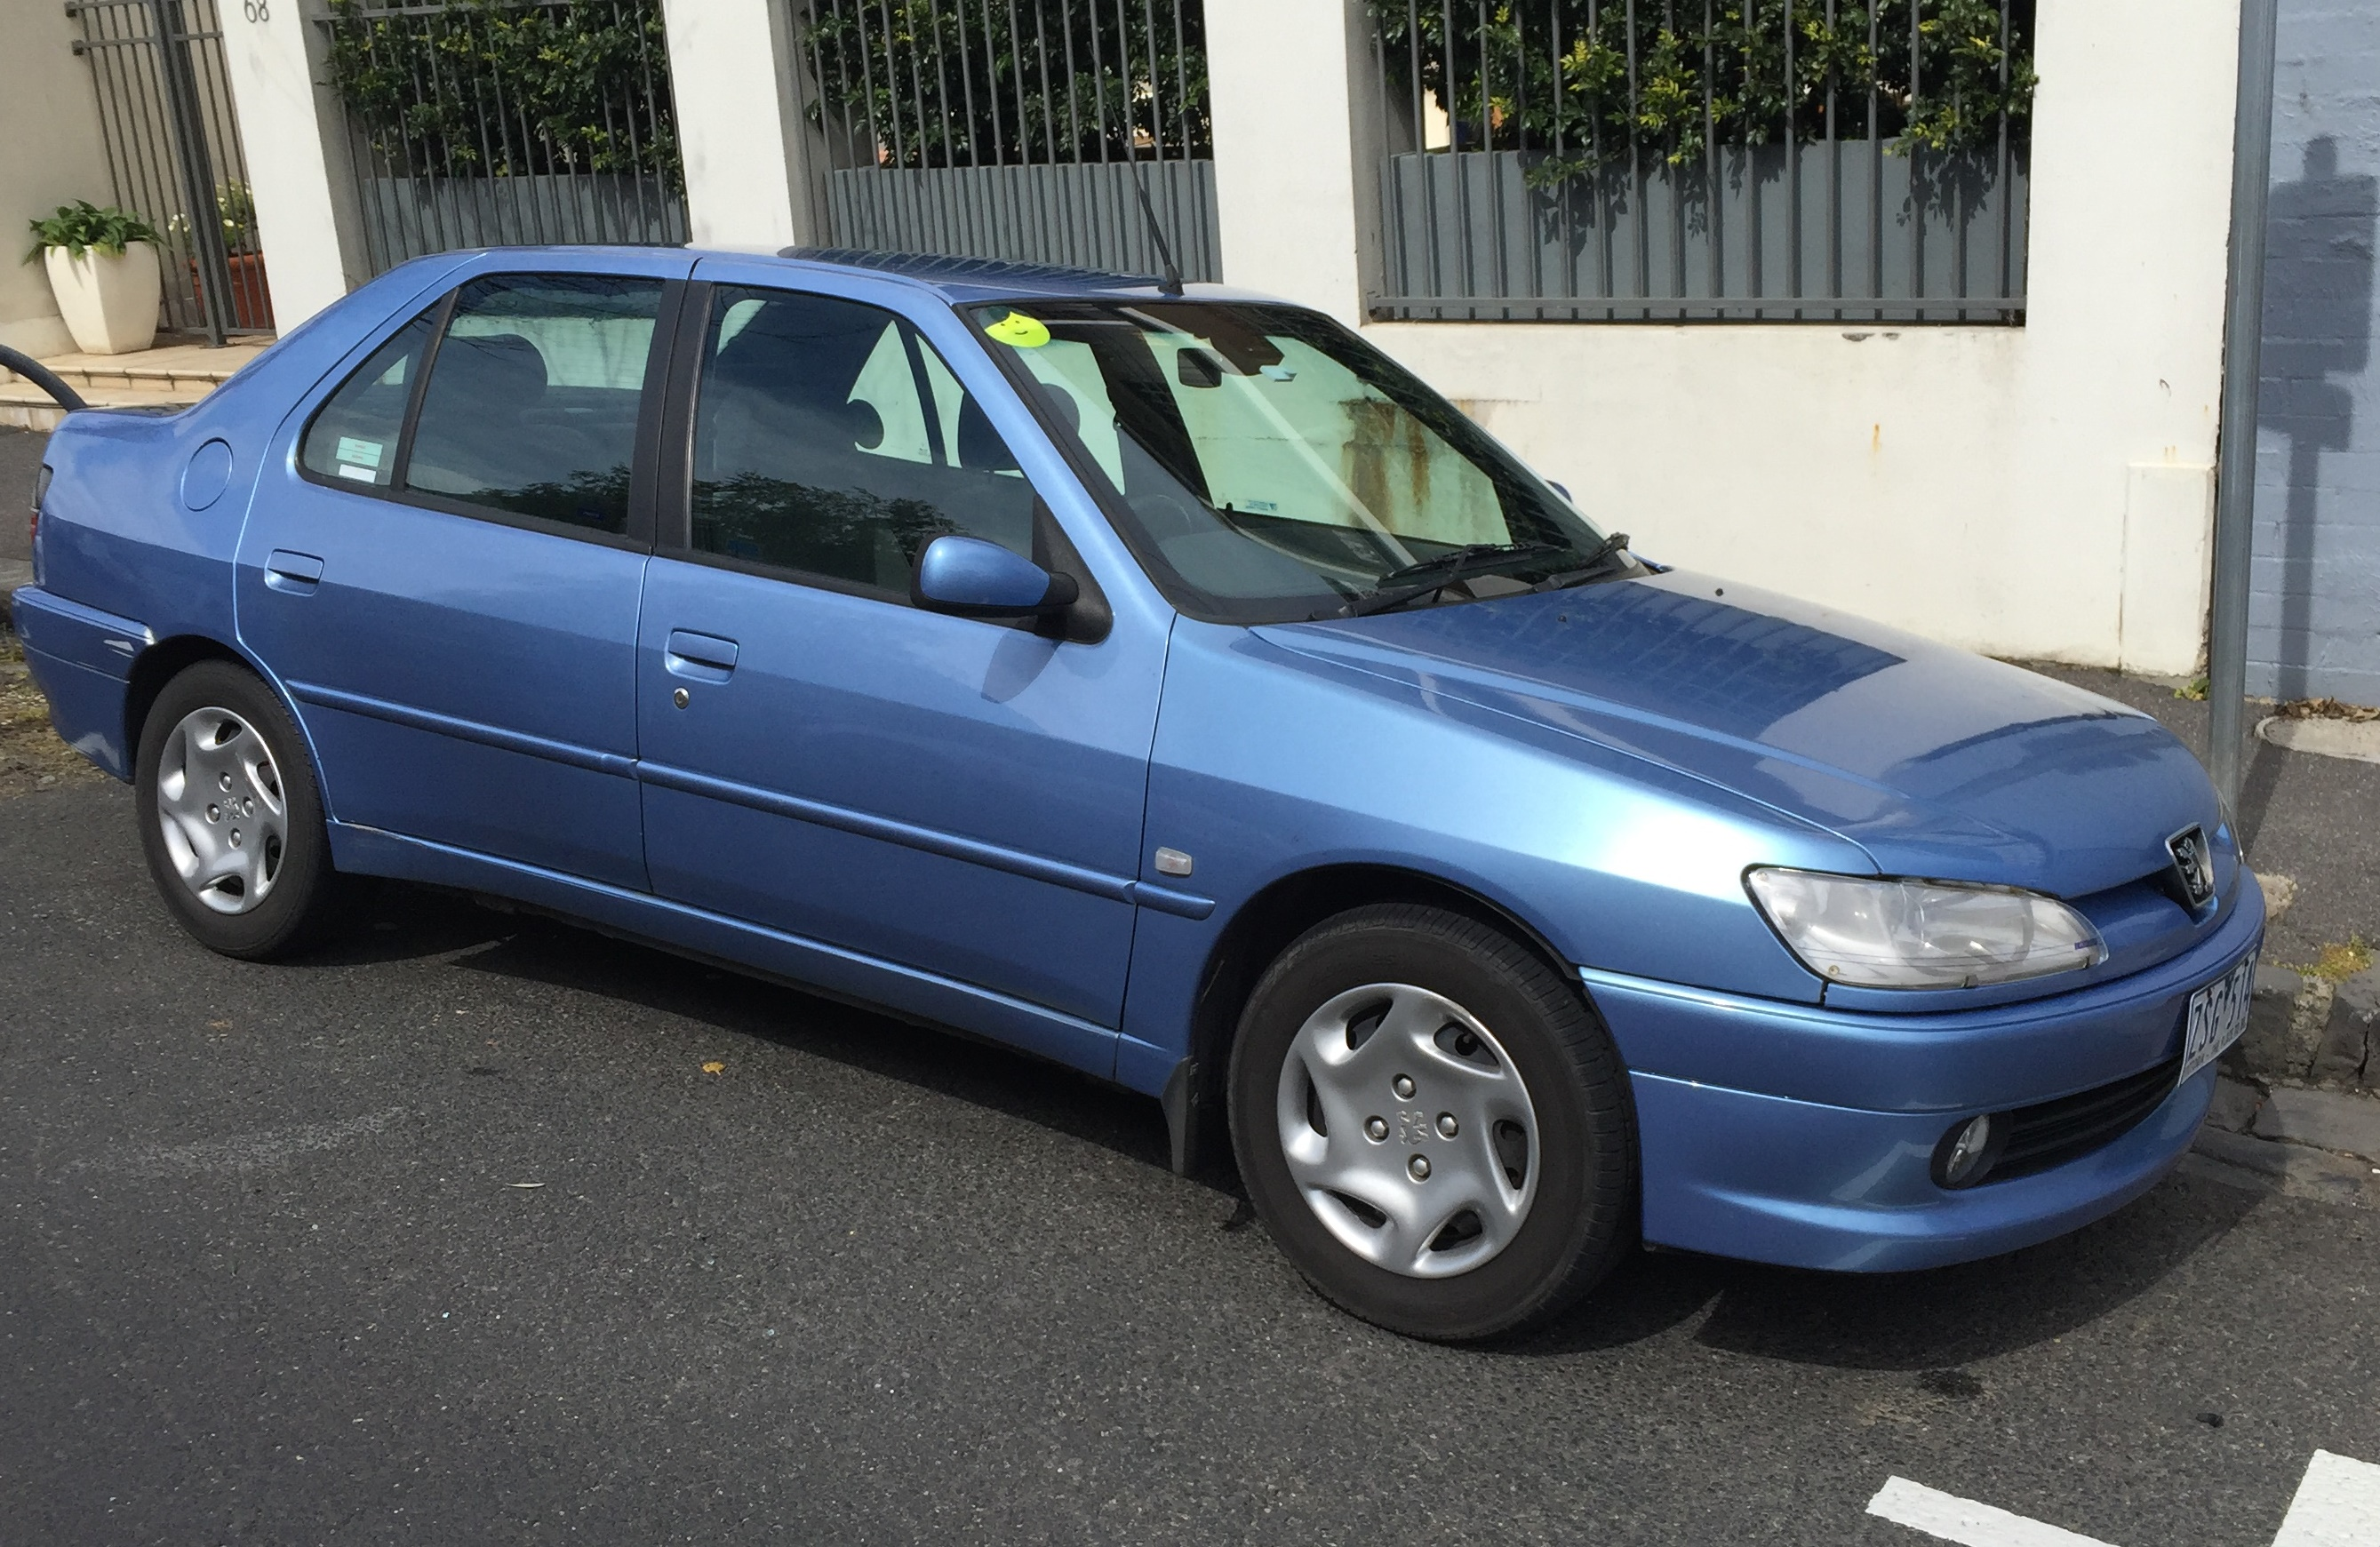 Picture of Thom's 2000 Peugeot 306